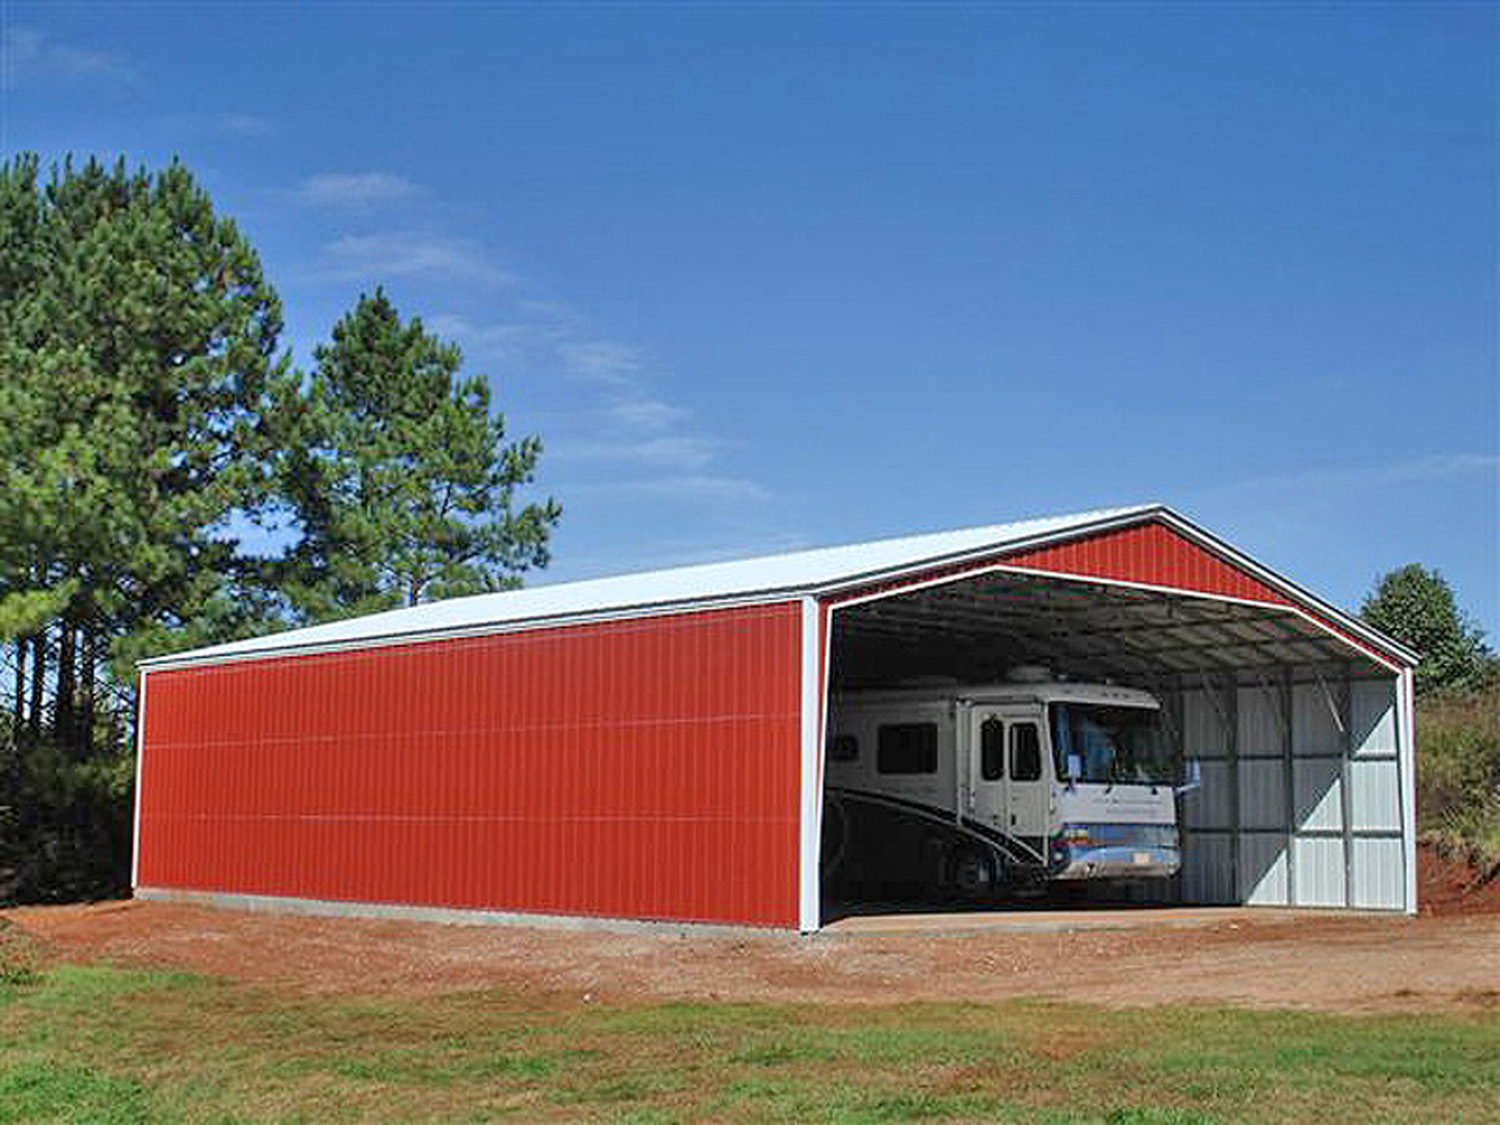 Rv storage buildings metal rv shelters rv carports for Large garage kits